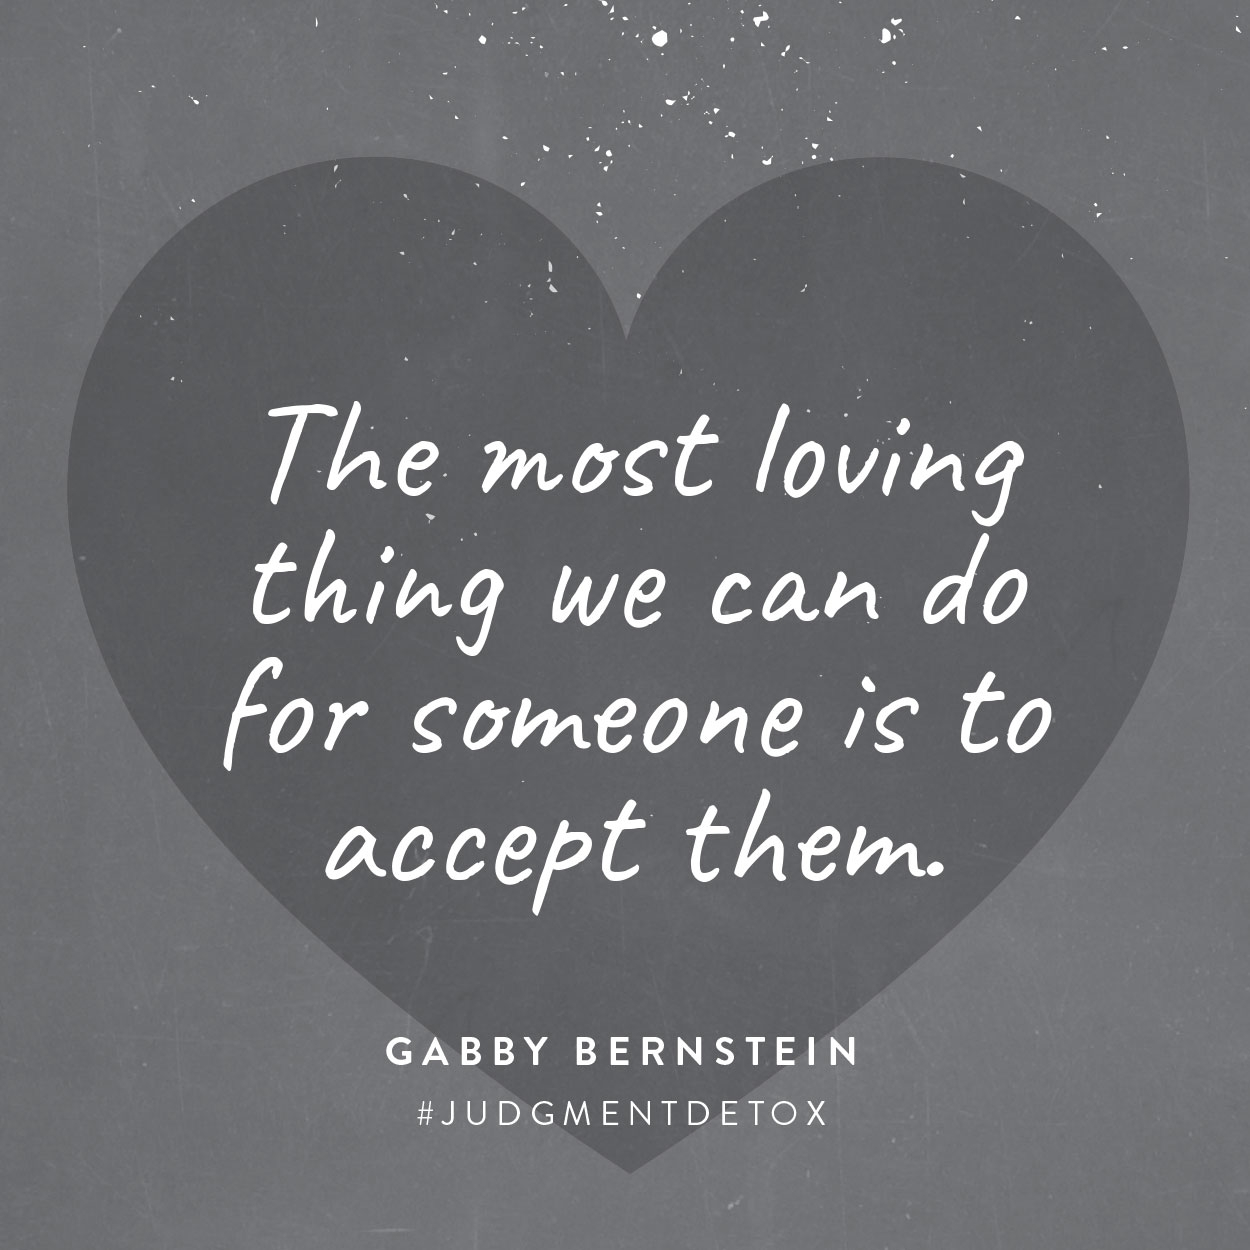 The most loving thing we can do for someone is to accept them. -Gabby Bernstein | Judgment Detox quote